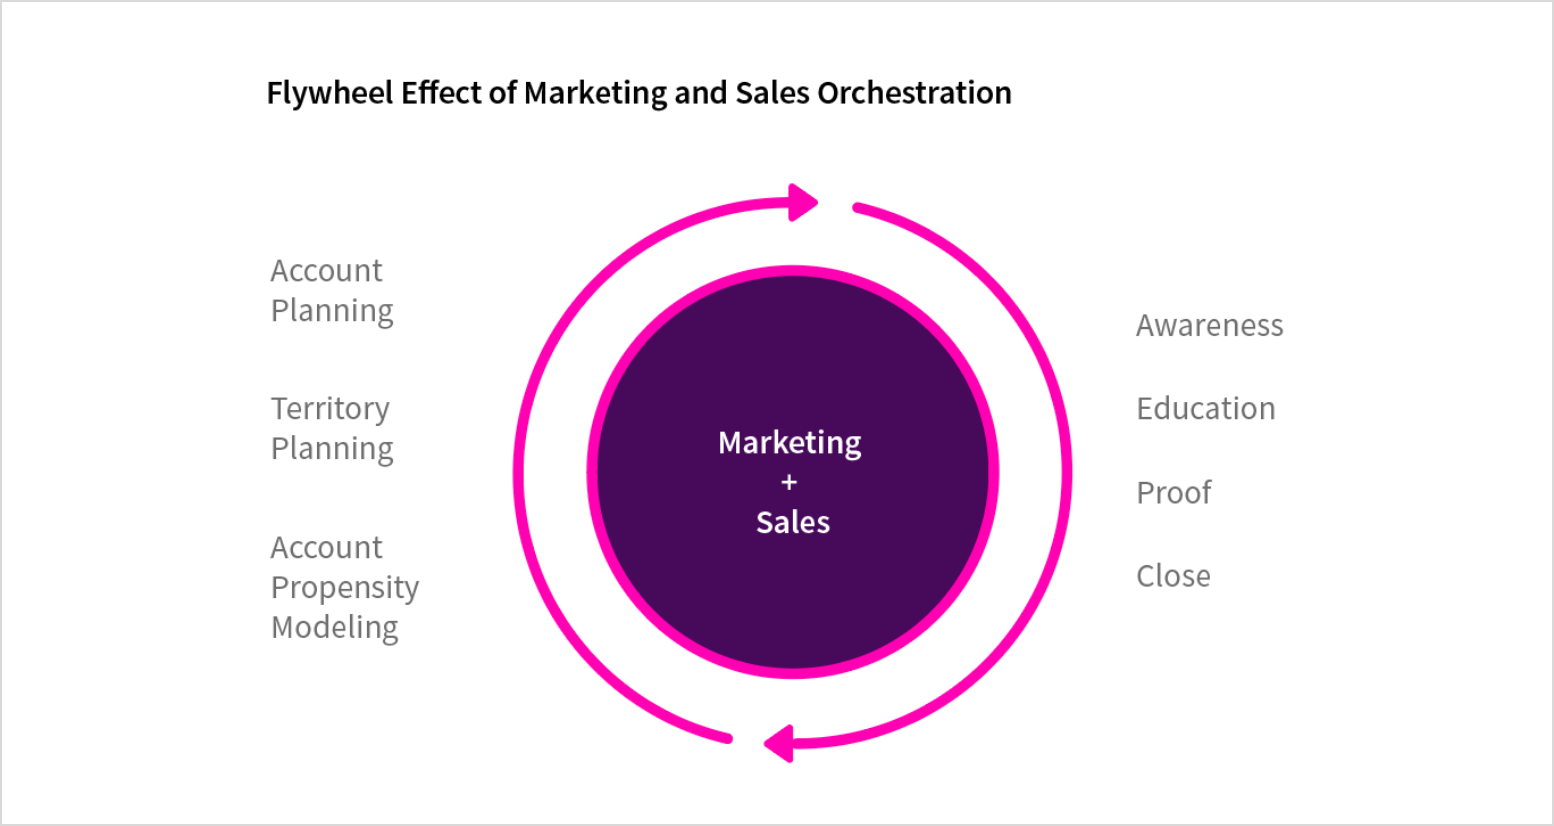 Achieving Masterful Sales & Marketing Alignment: The Art of